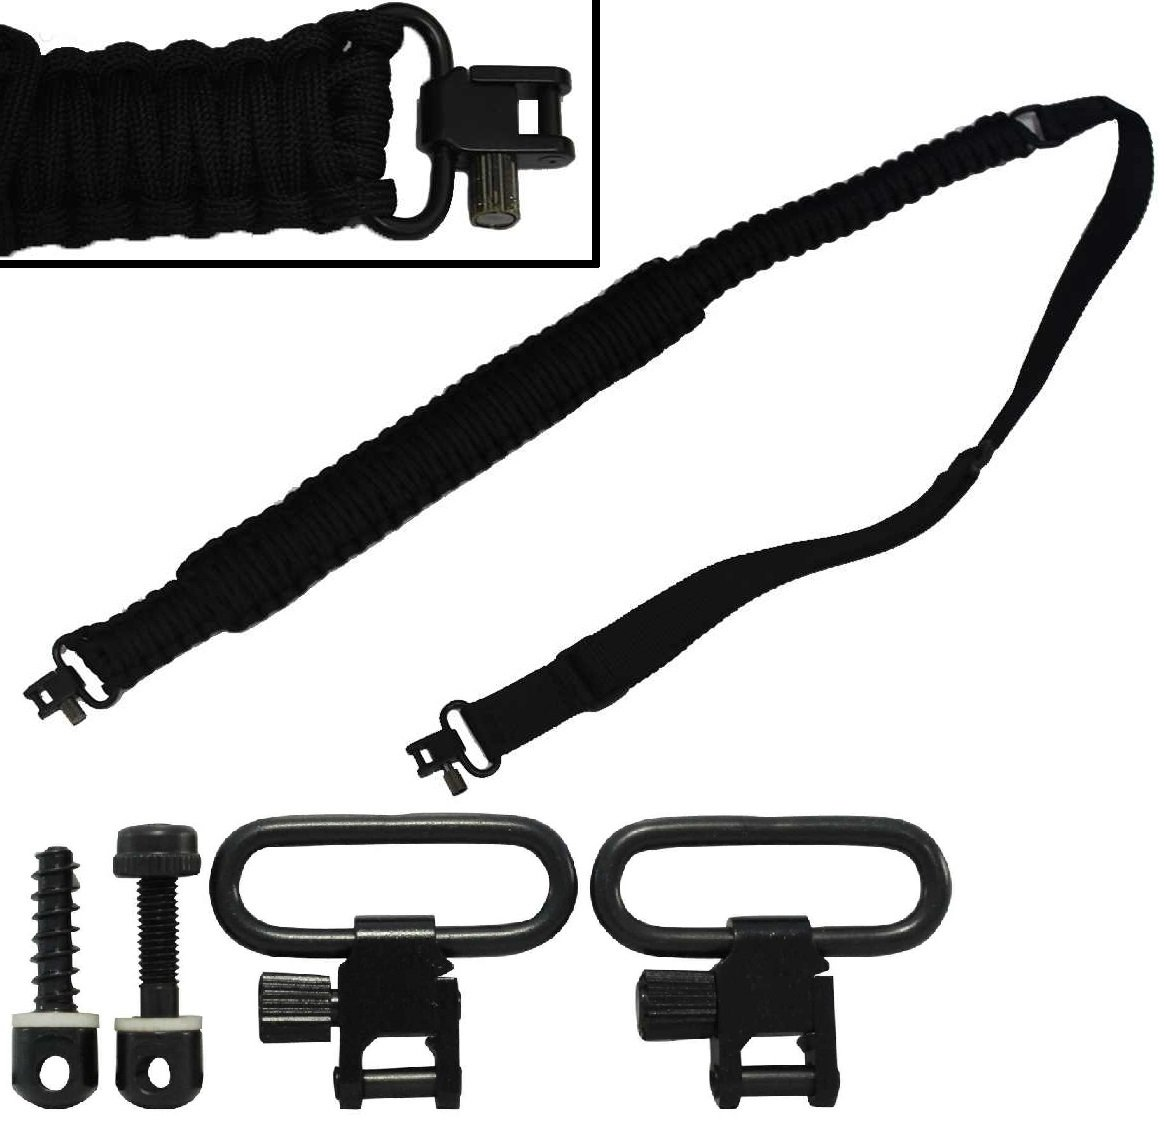 Ultimate Arms Gear Two QD 1'' Slot 7/8'' & 3/4'' Wood Screws for Buttstocks Stud Swivel + 550 lb Paracord Survial Sling, Black 56' ft Cord with Swivel Ends for Remington 870/1187/11-87 12/20 Gauge